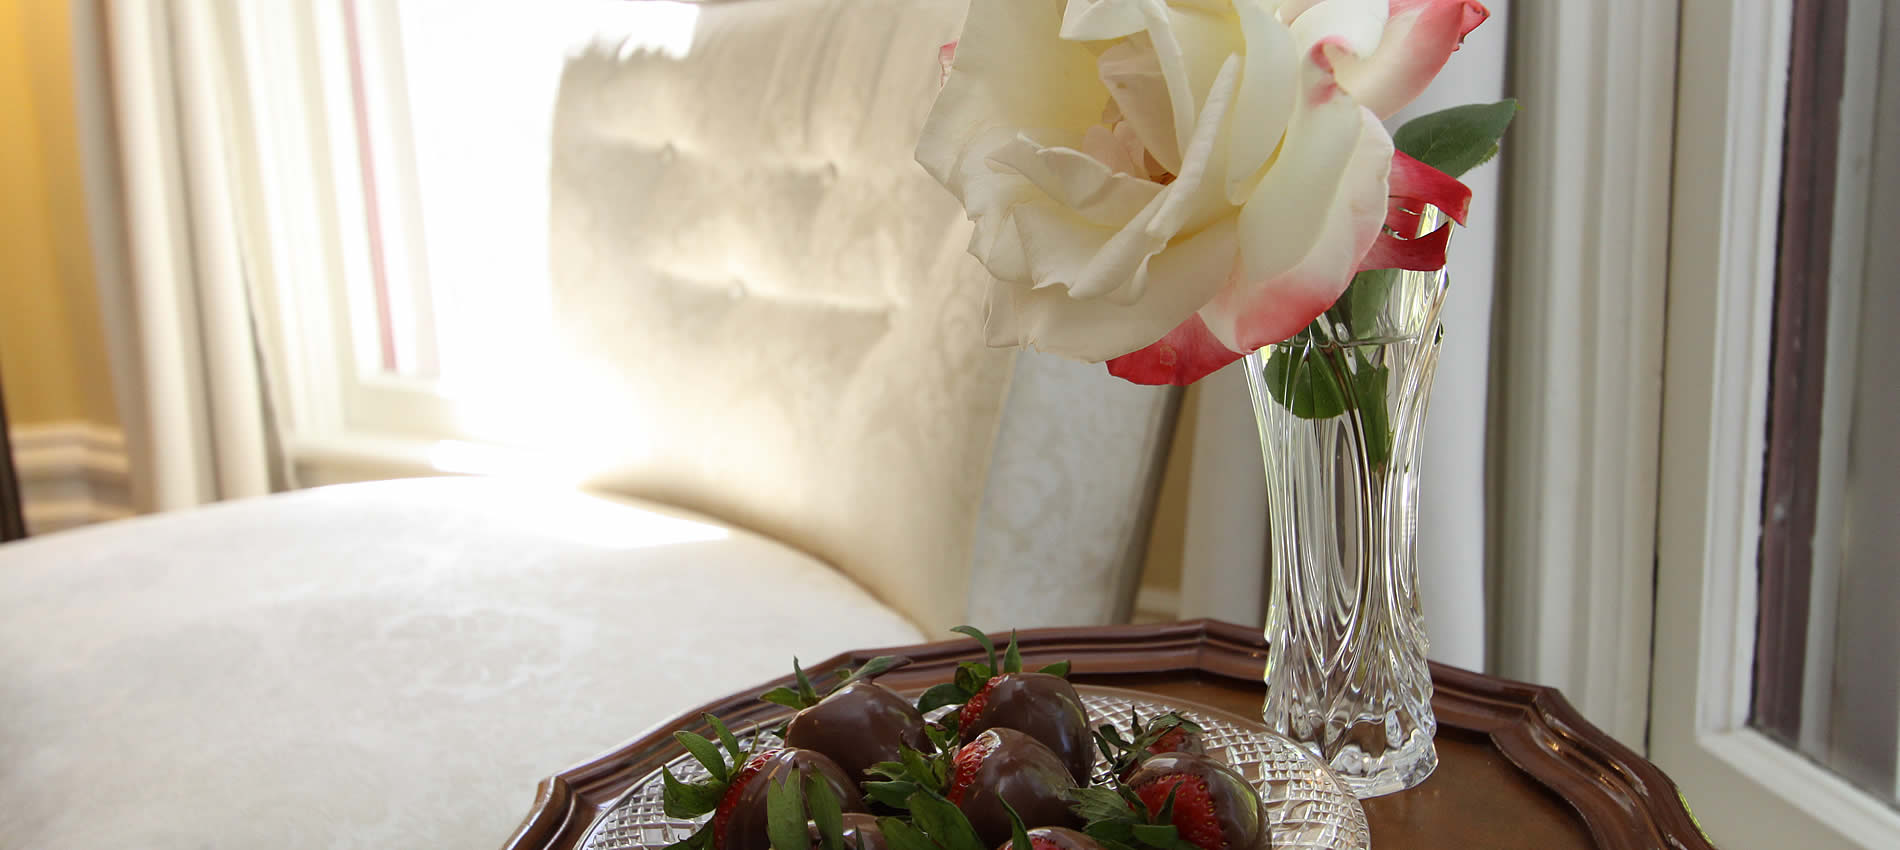 rose and chocolate covered strawberries